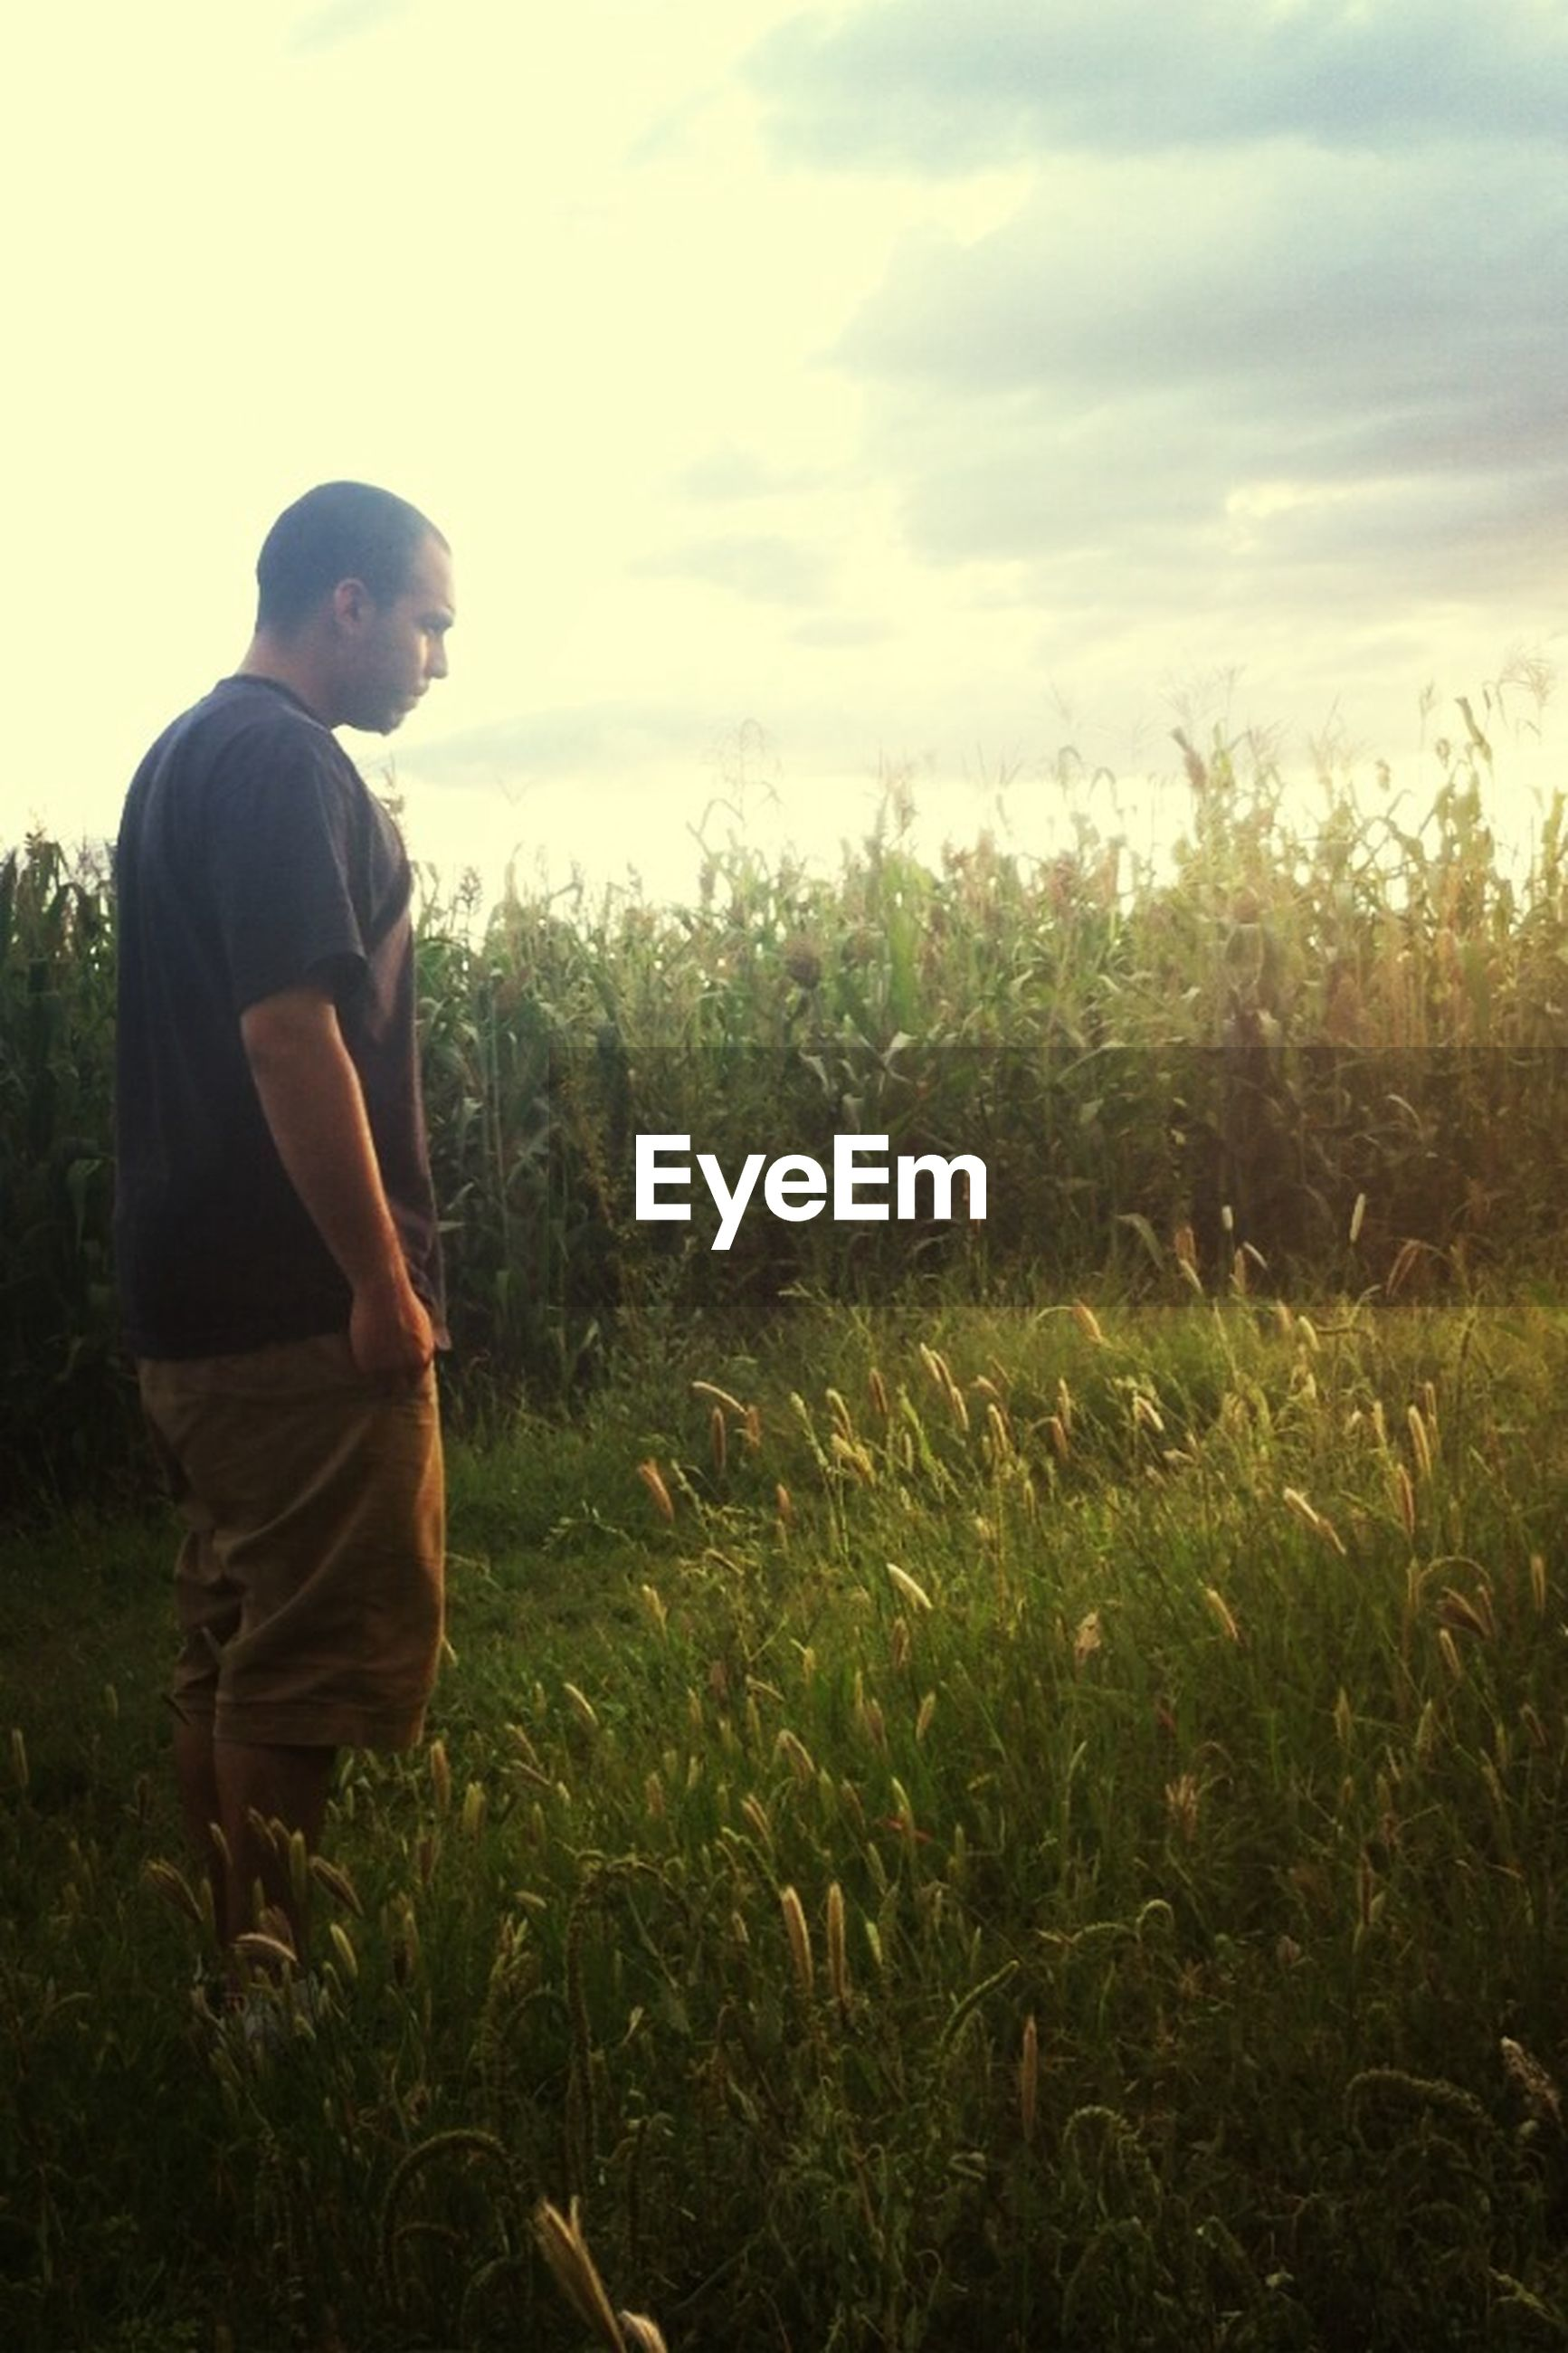 lifestyles, leisure activity, casual clothing, field, grass, men, rear view, standing, three quarter length, sky, full length, landscape, photography themes, young men, photographing, young adult, nature, camera - photographic equipment